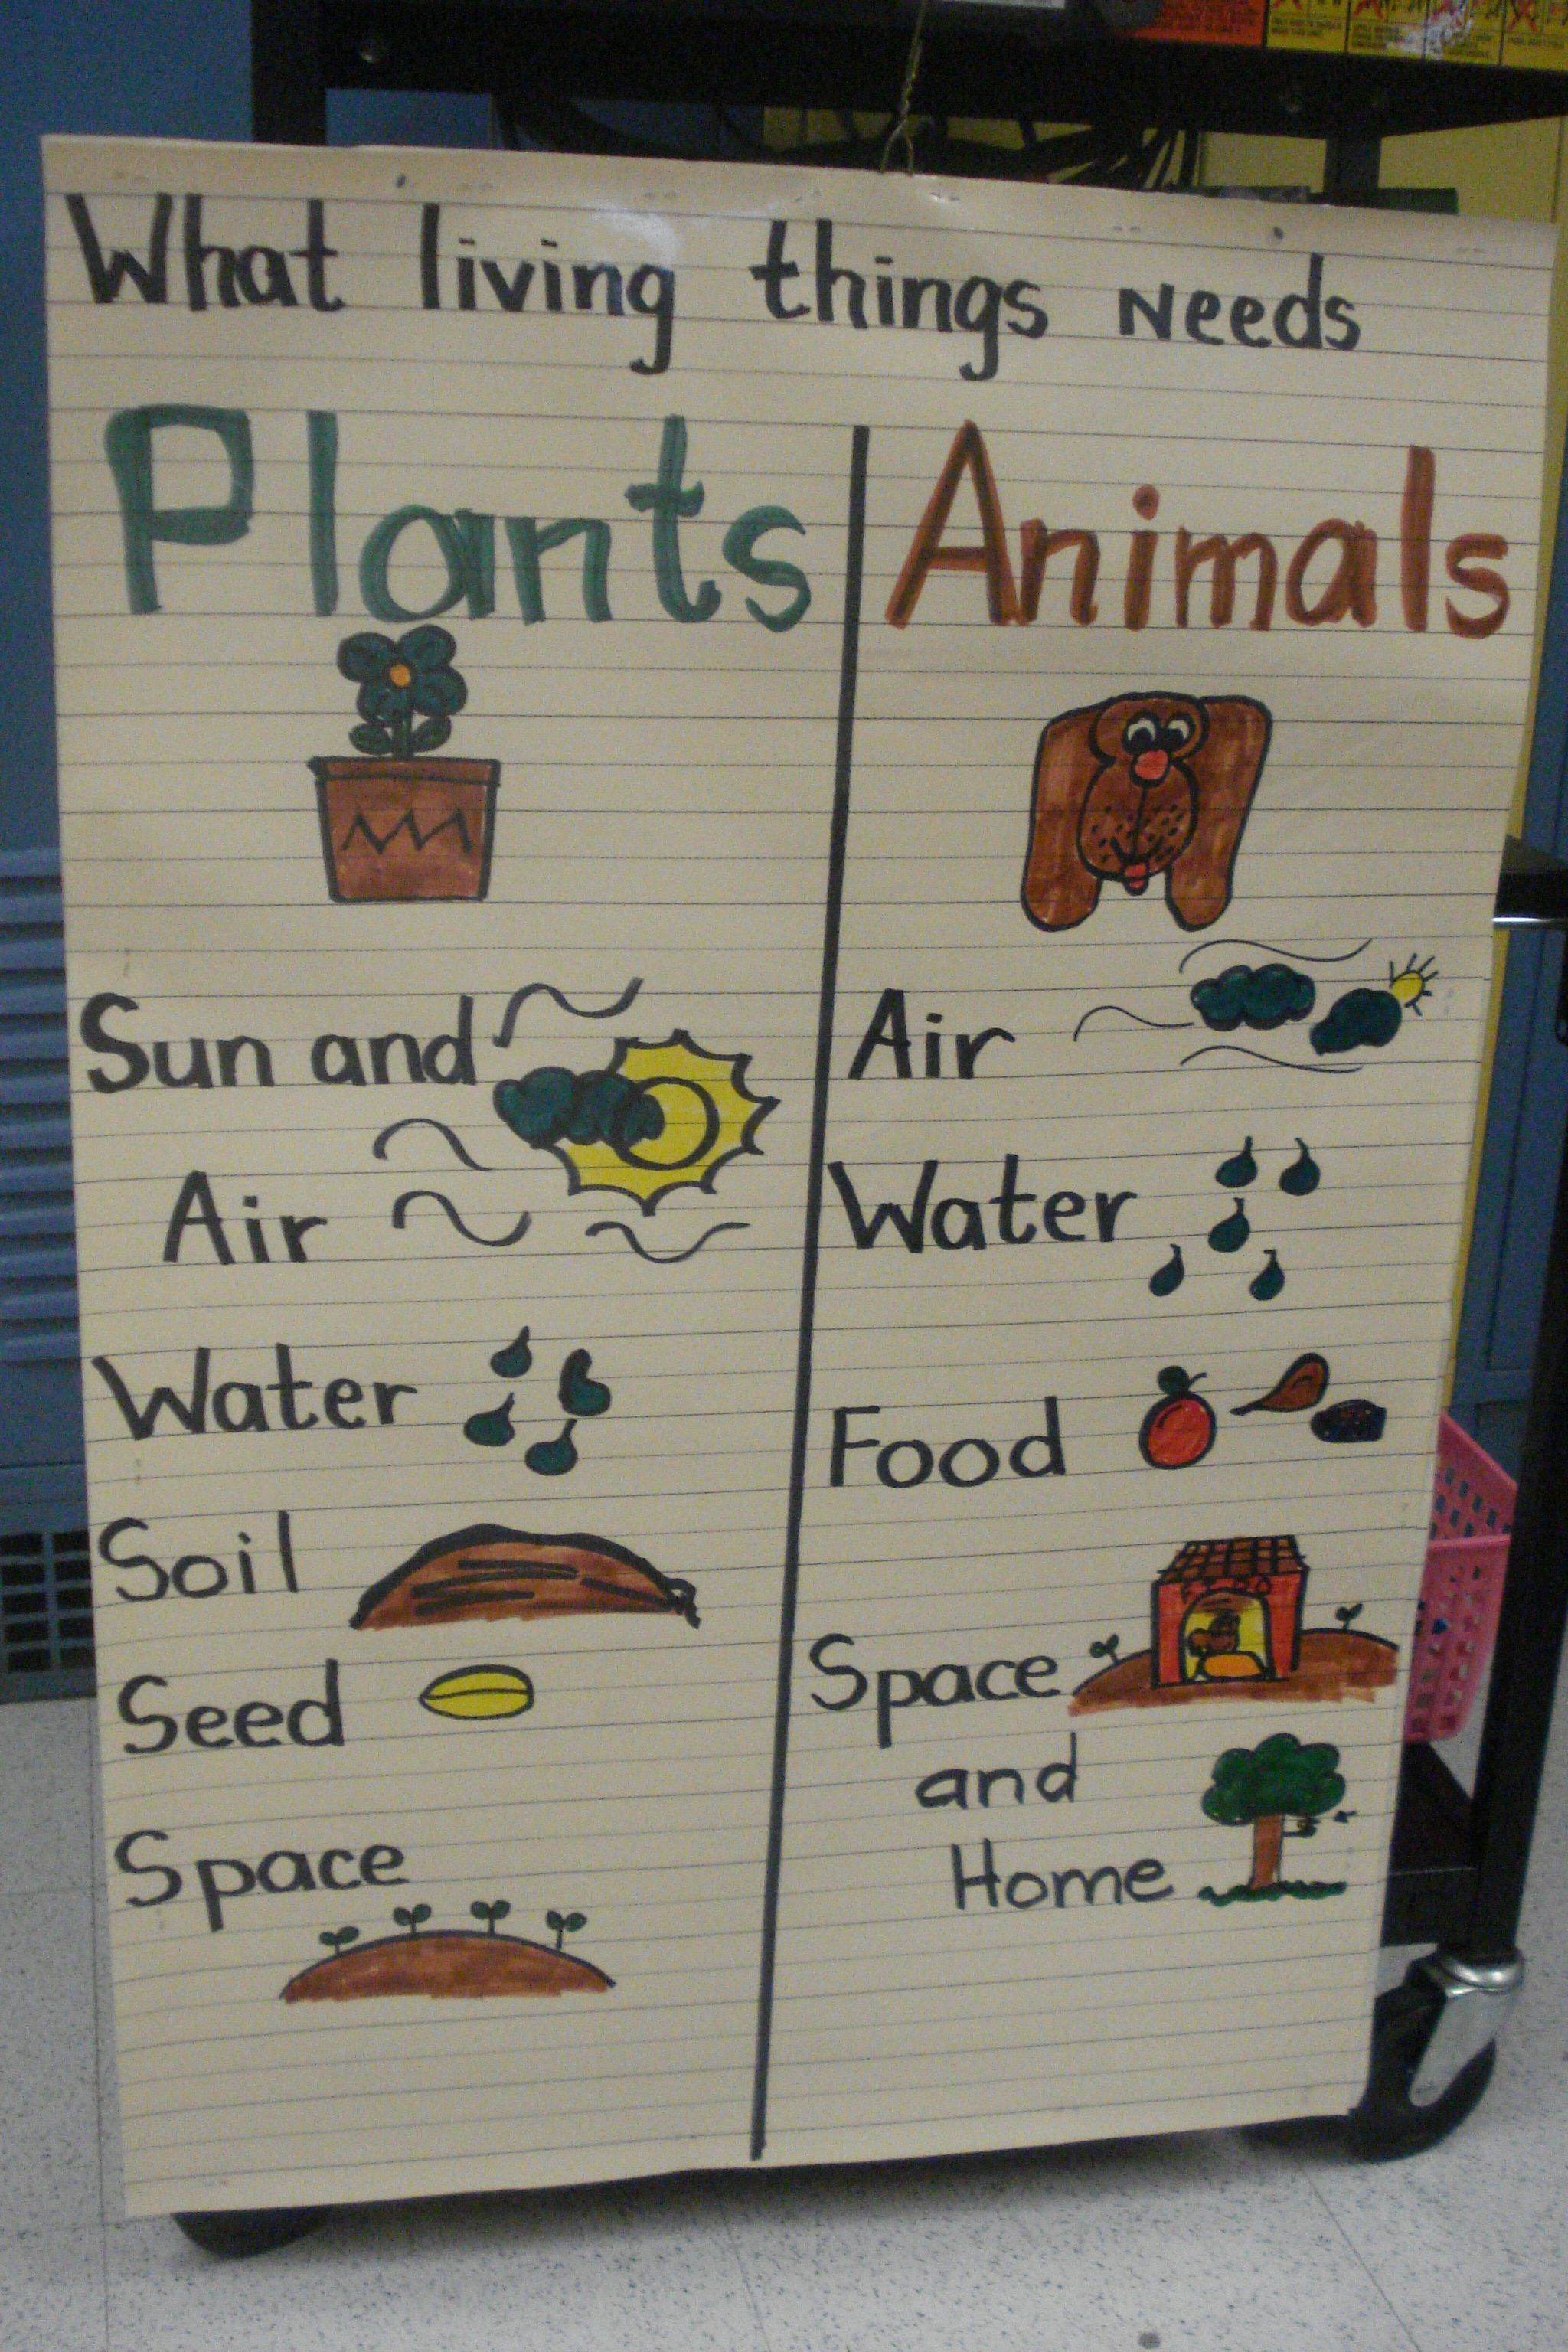 Plants And Animals Needs Anchor Chart